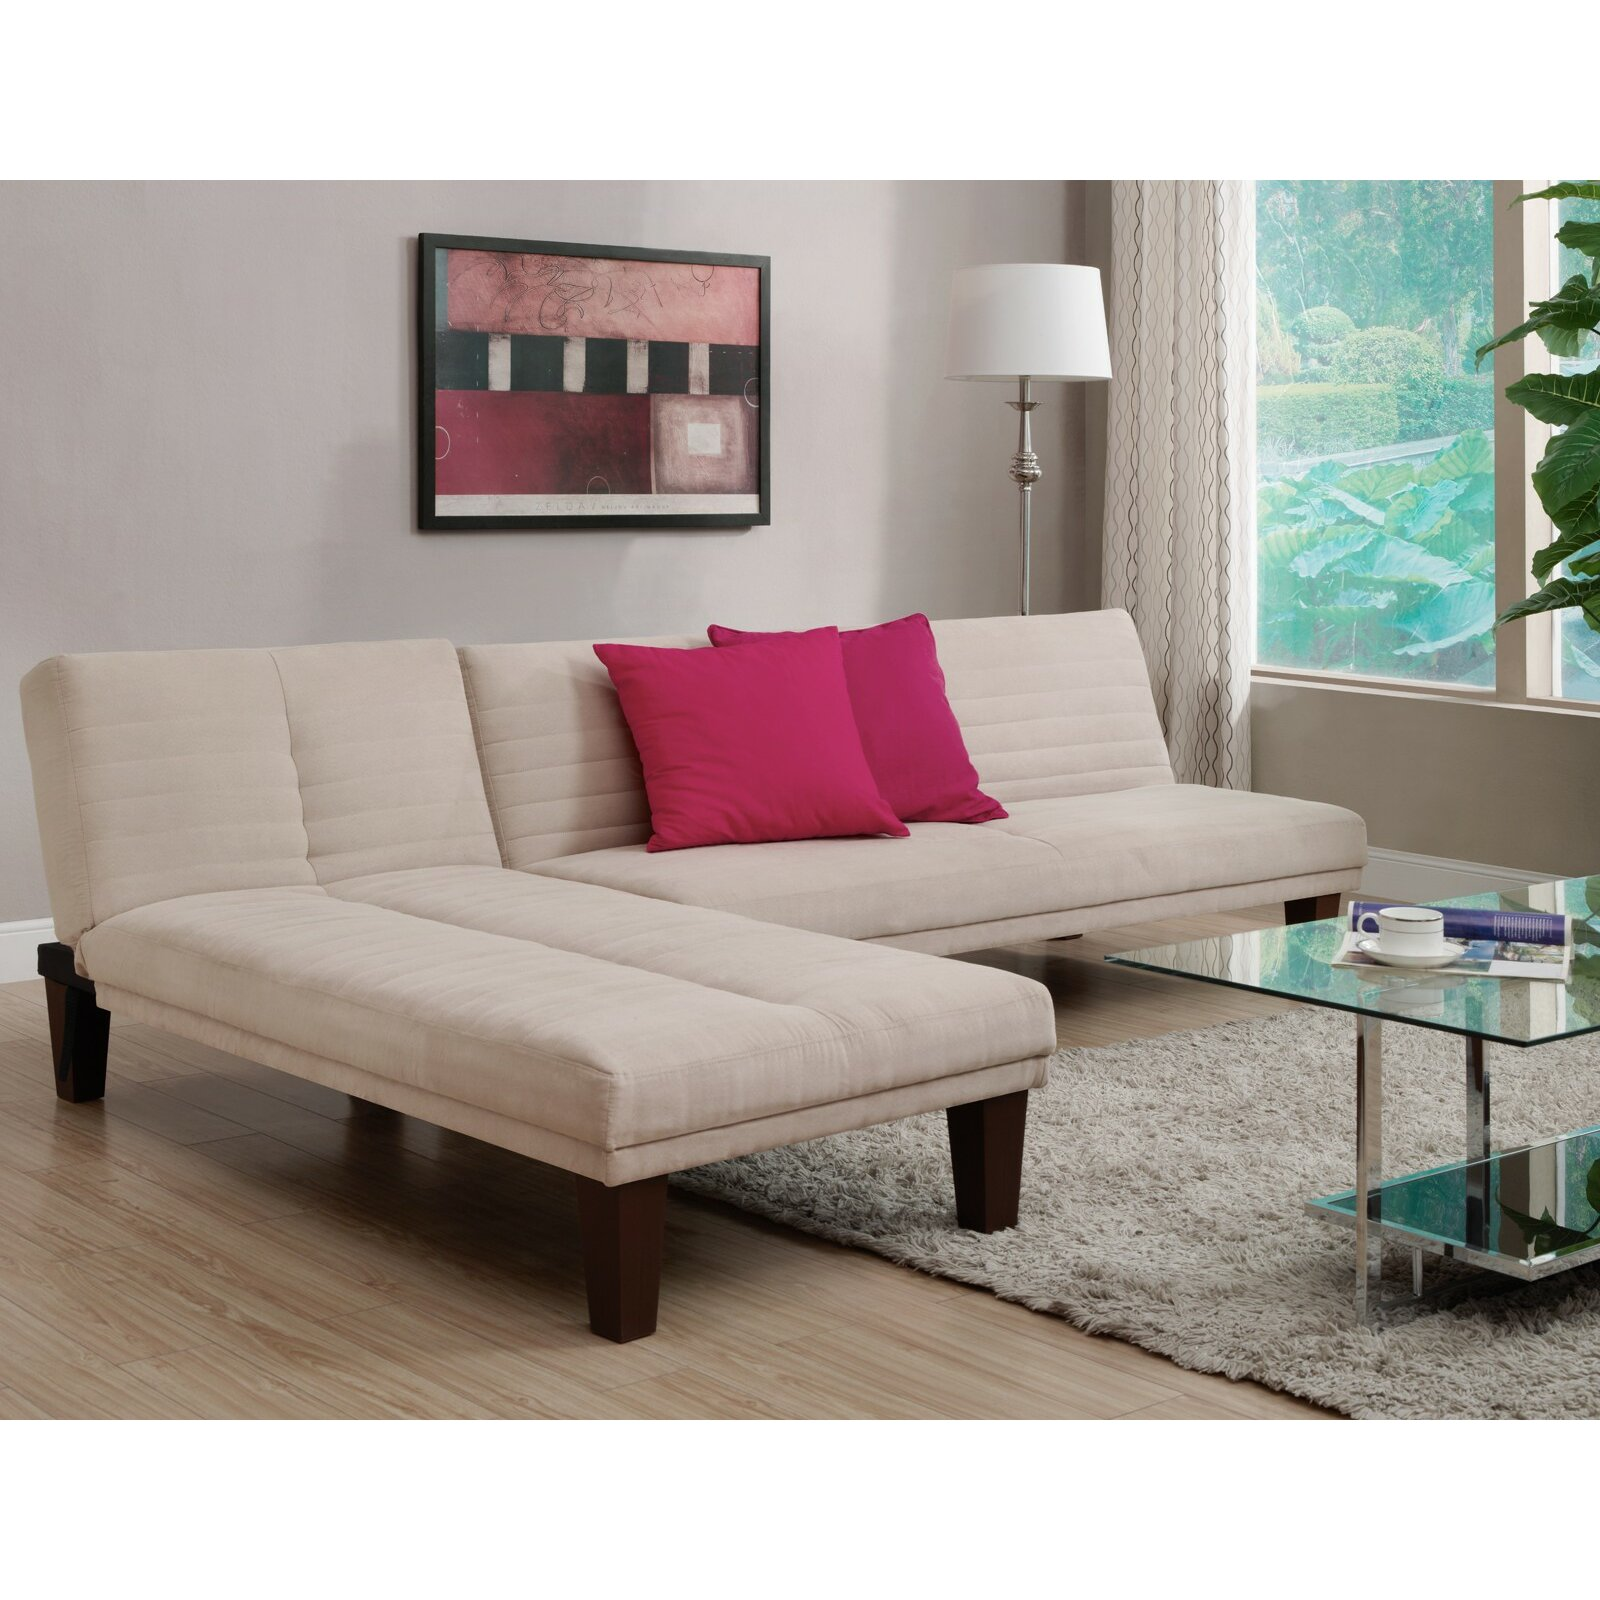 Zipcode design bianca chaise lounge reviews wayfair for Chaise design coloree